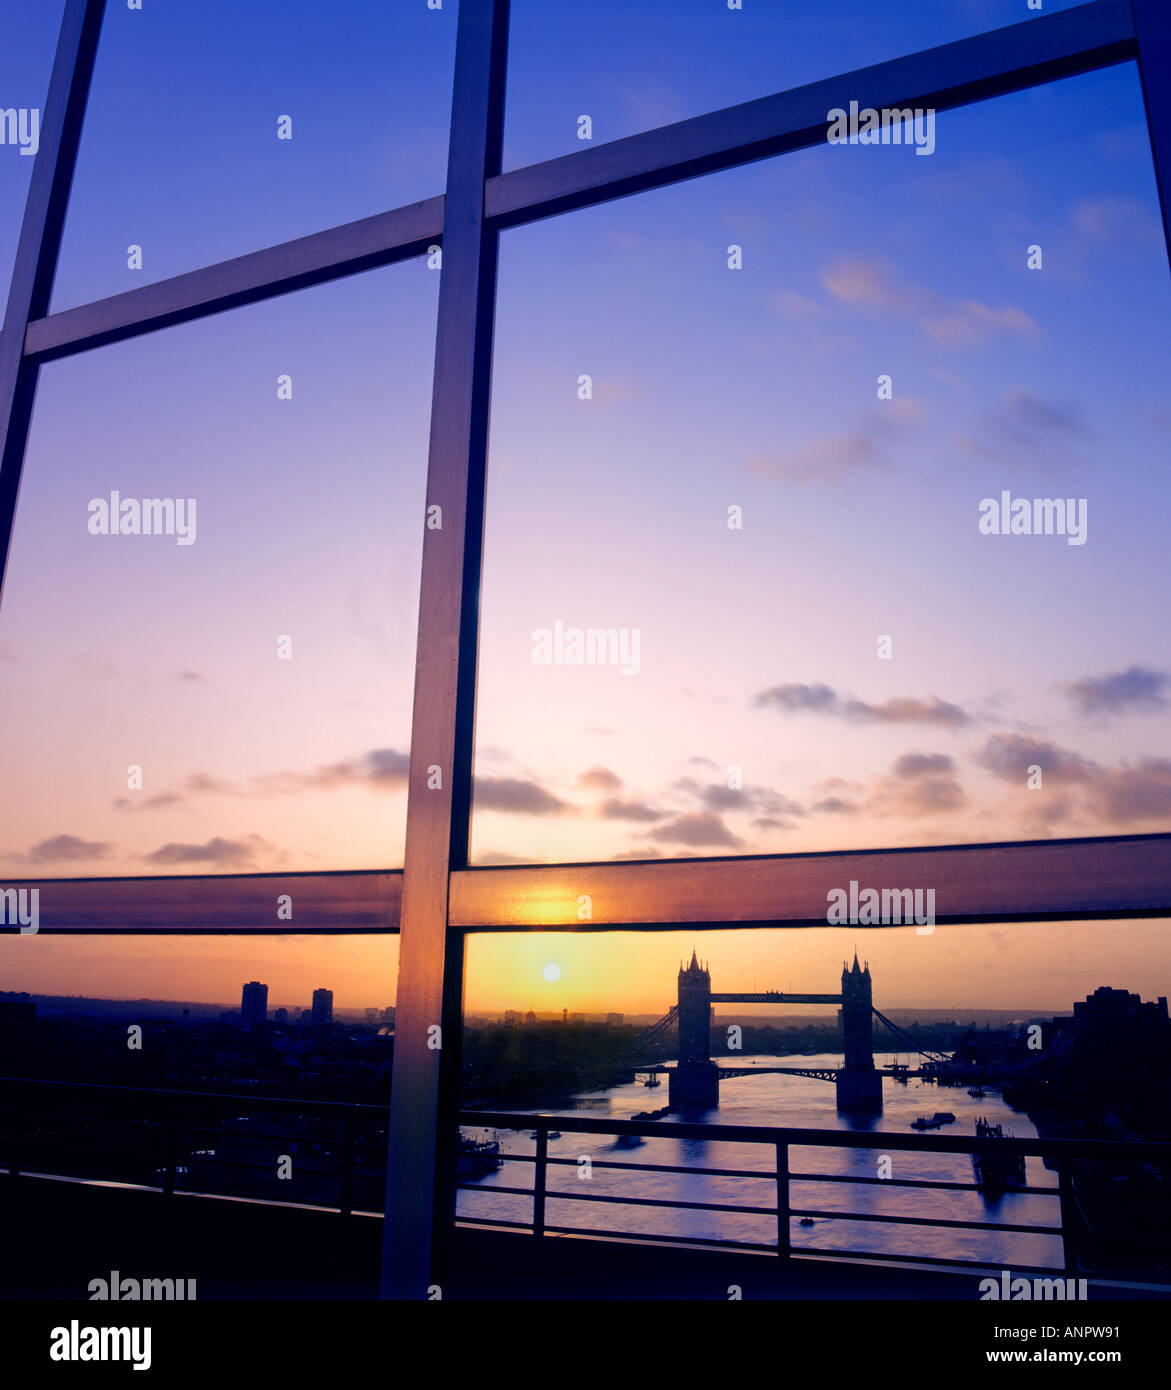 La Tamise et le Tower Bridge reflète dans la ville moderne immeuble de bureaux financiers windows verre au lever de London UK Photo Stock